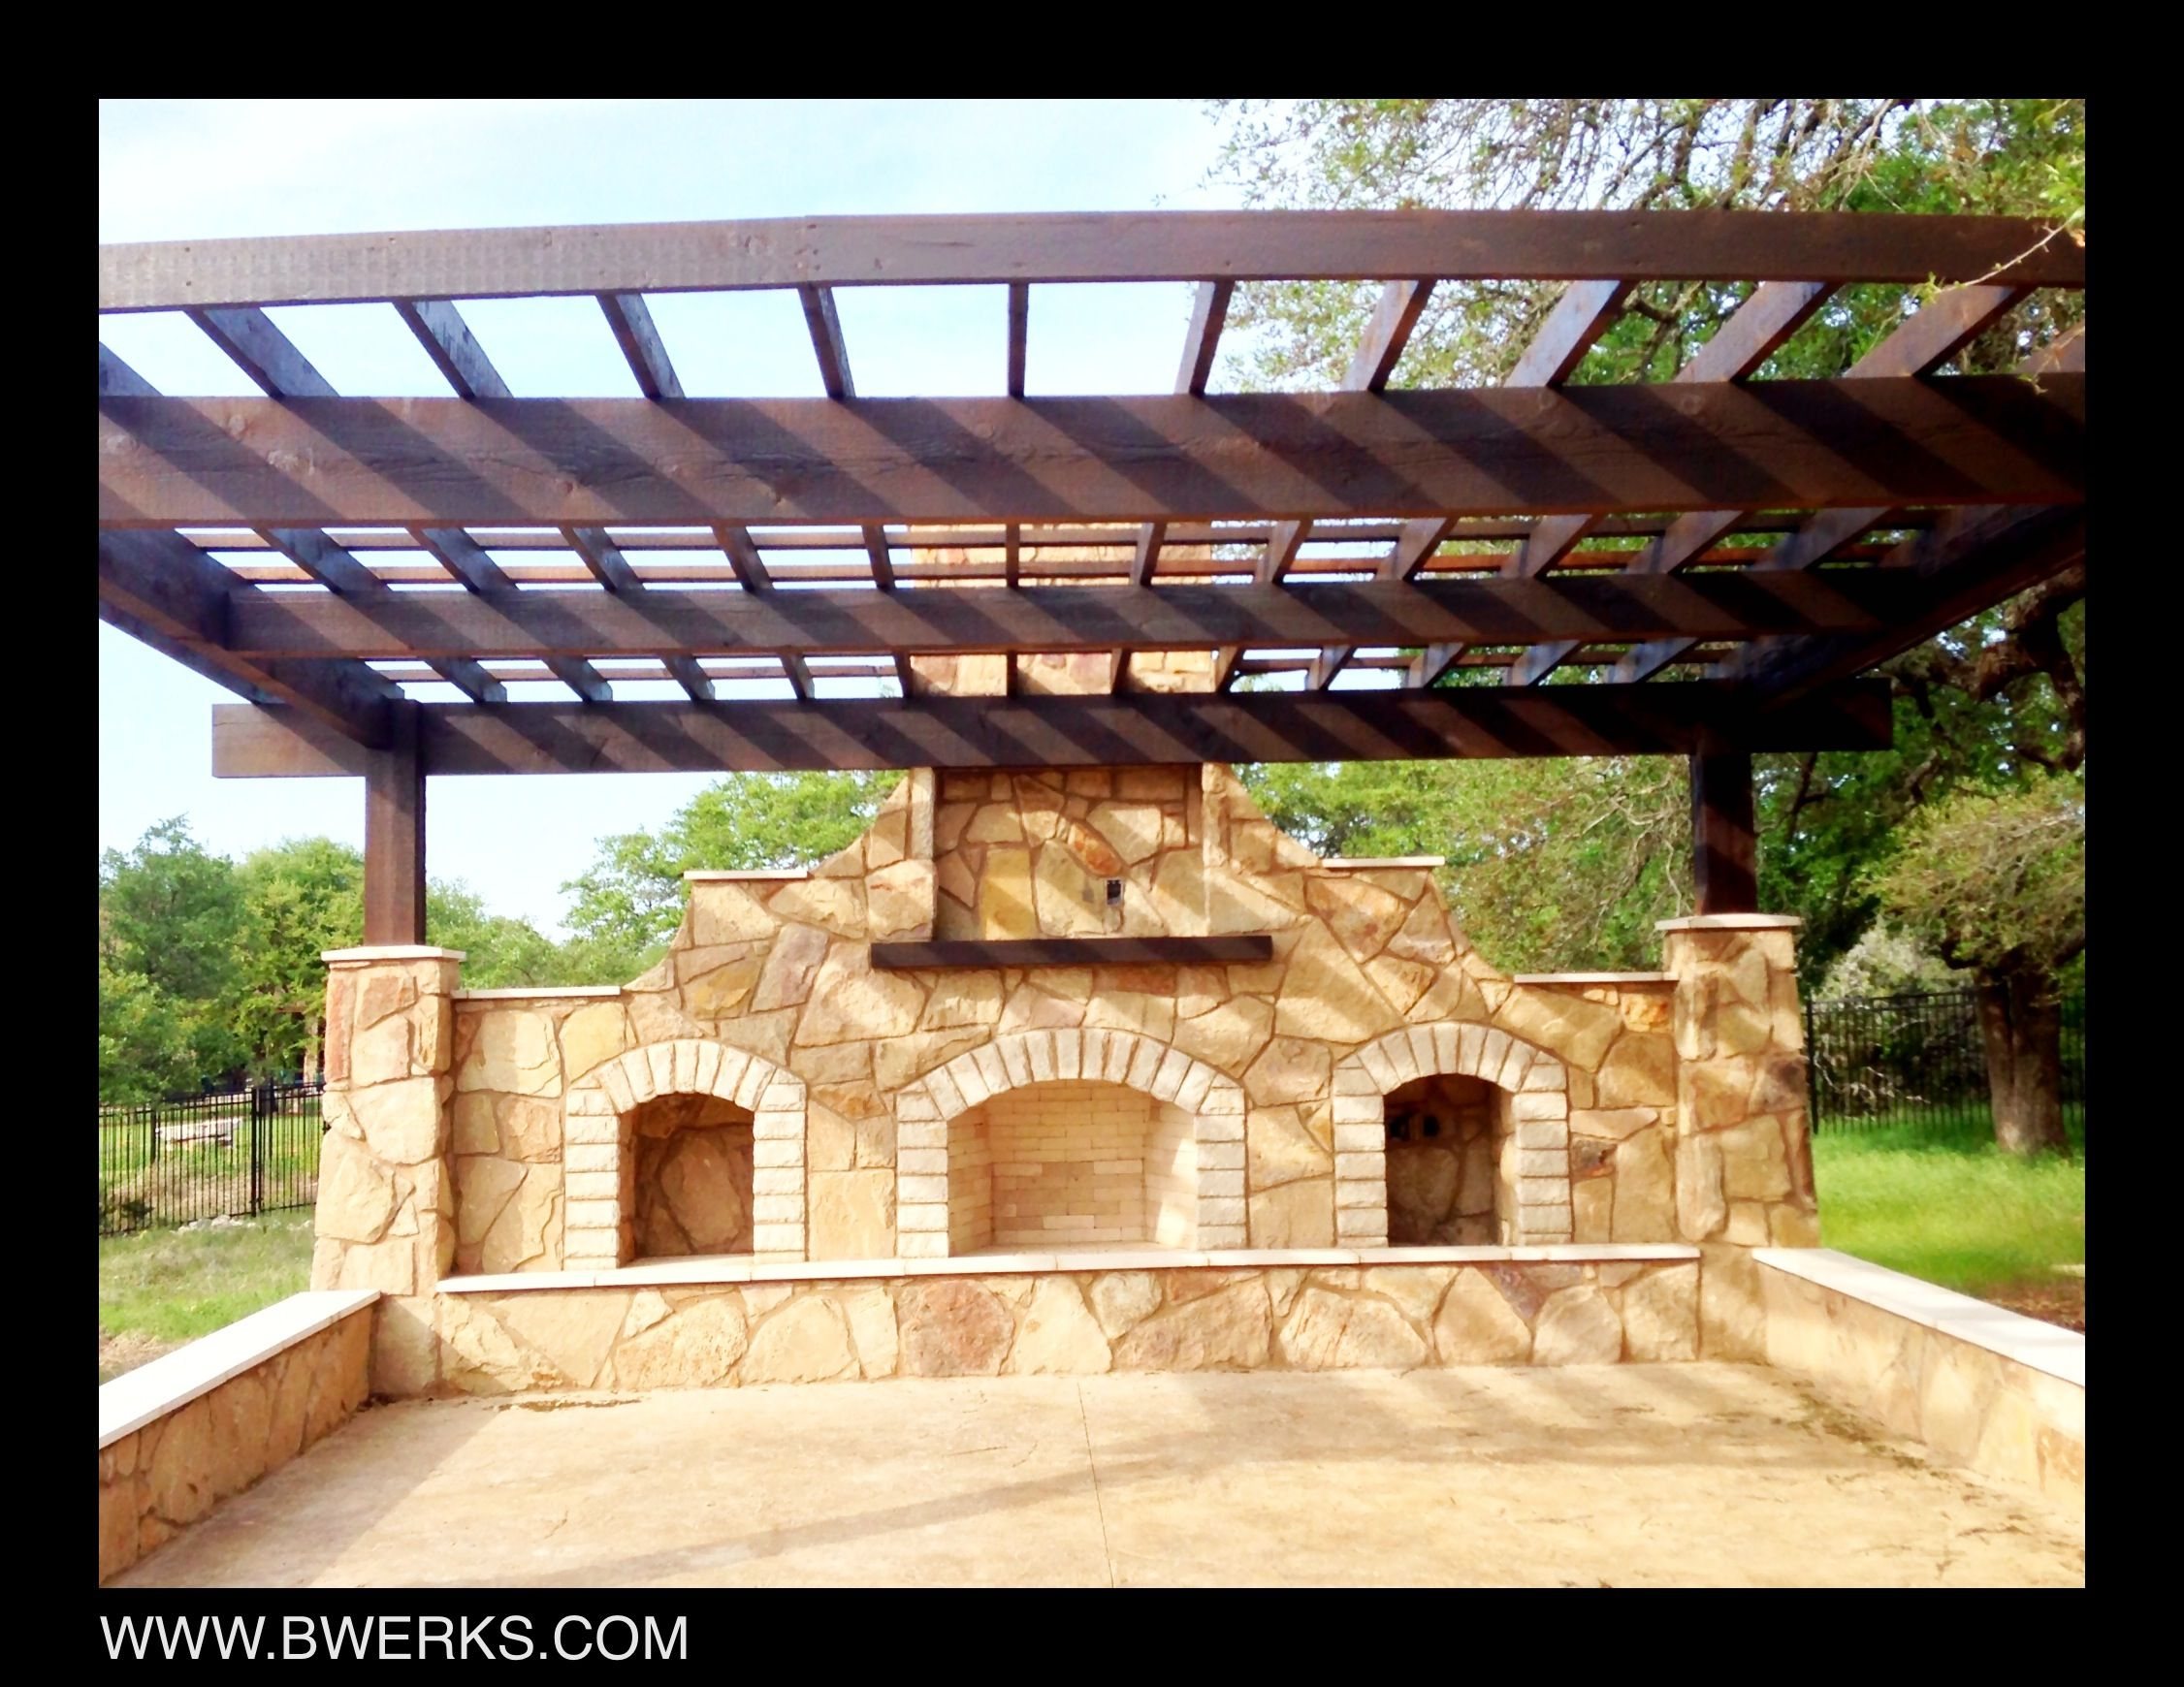 BWerks outdoor living environment! (With